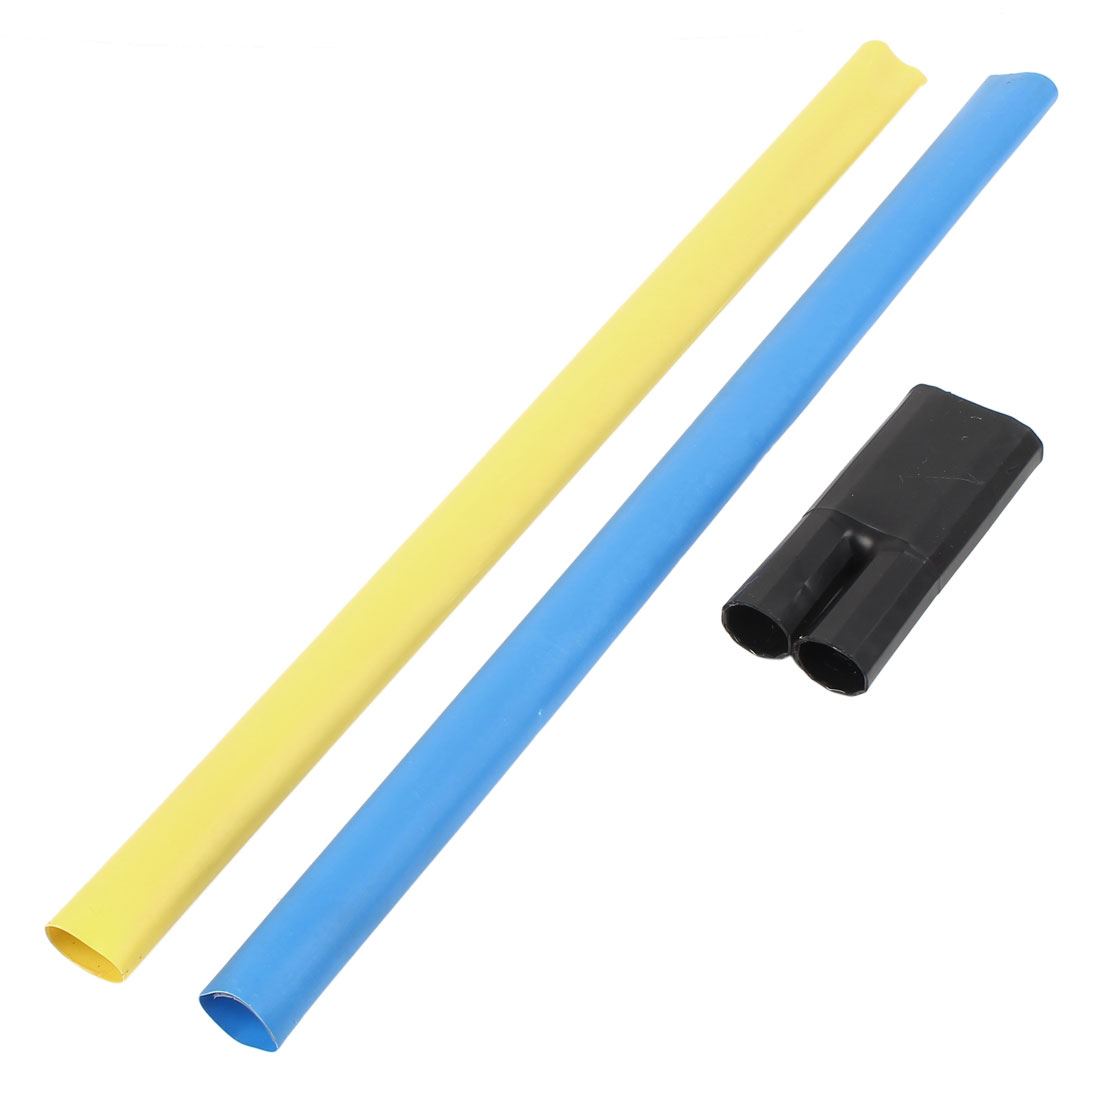 2Pcs Blue Yellow Polyolefin 30mm Dia 70-120mm2 Cable Heat Shrink Cover Wiring Shrinkable Tube 0.6M w Breakout Boot